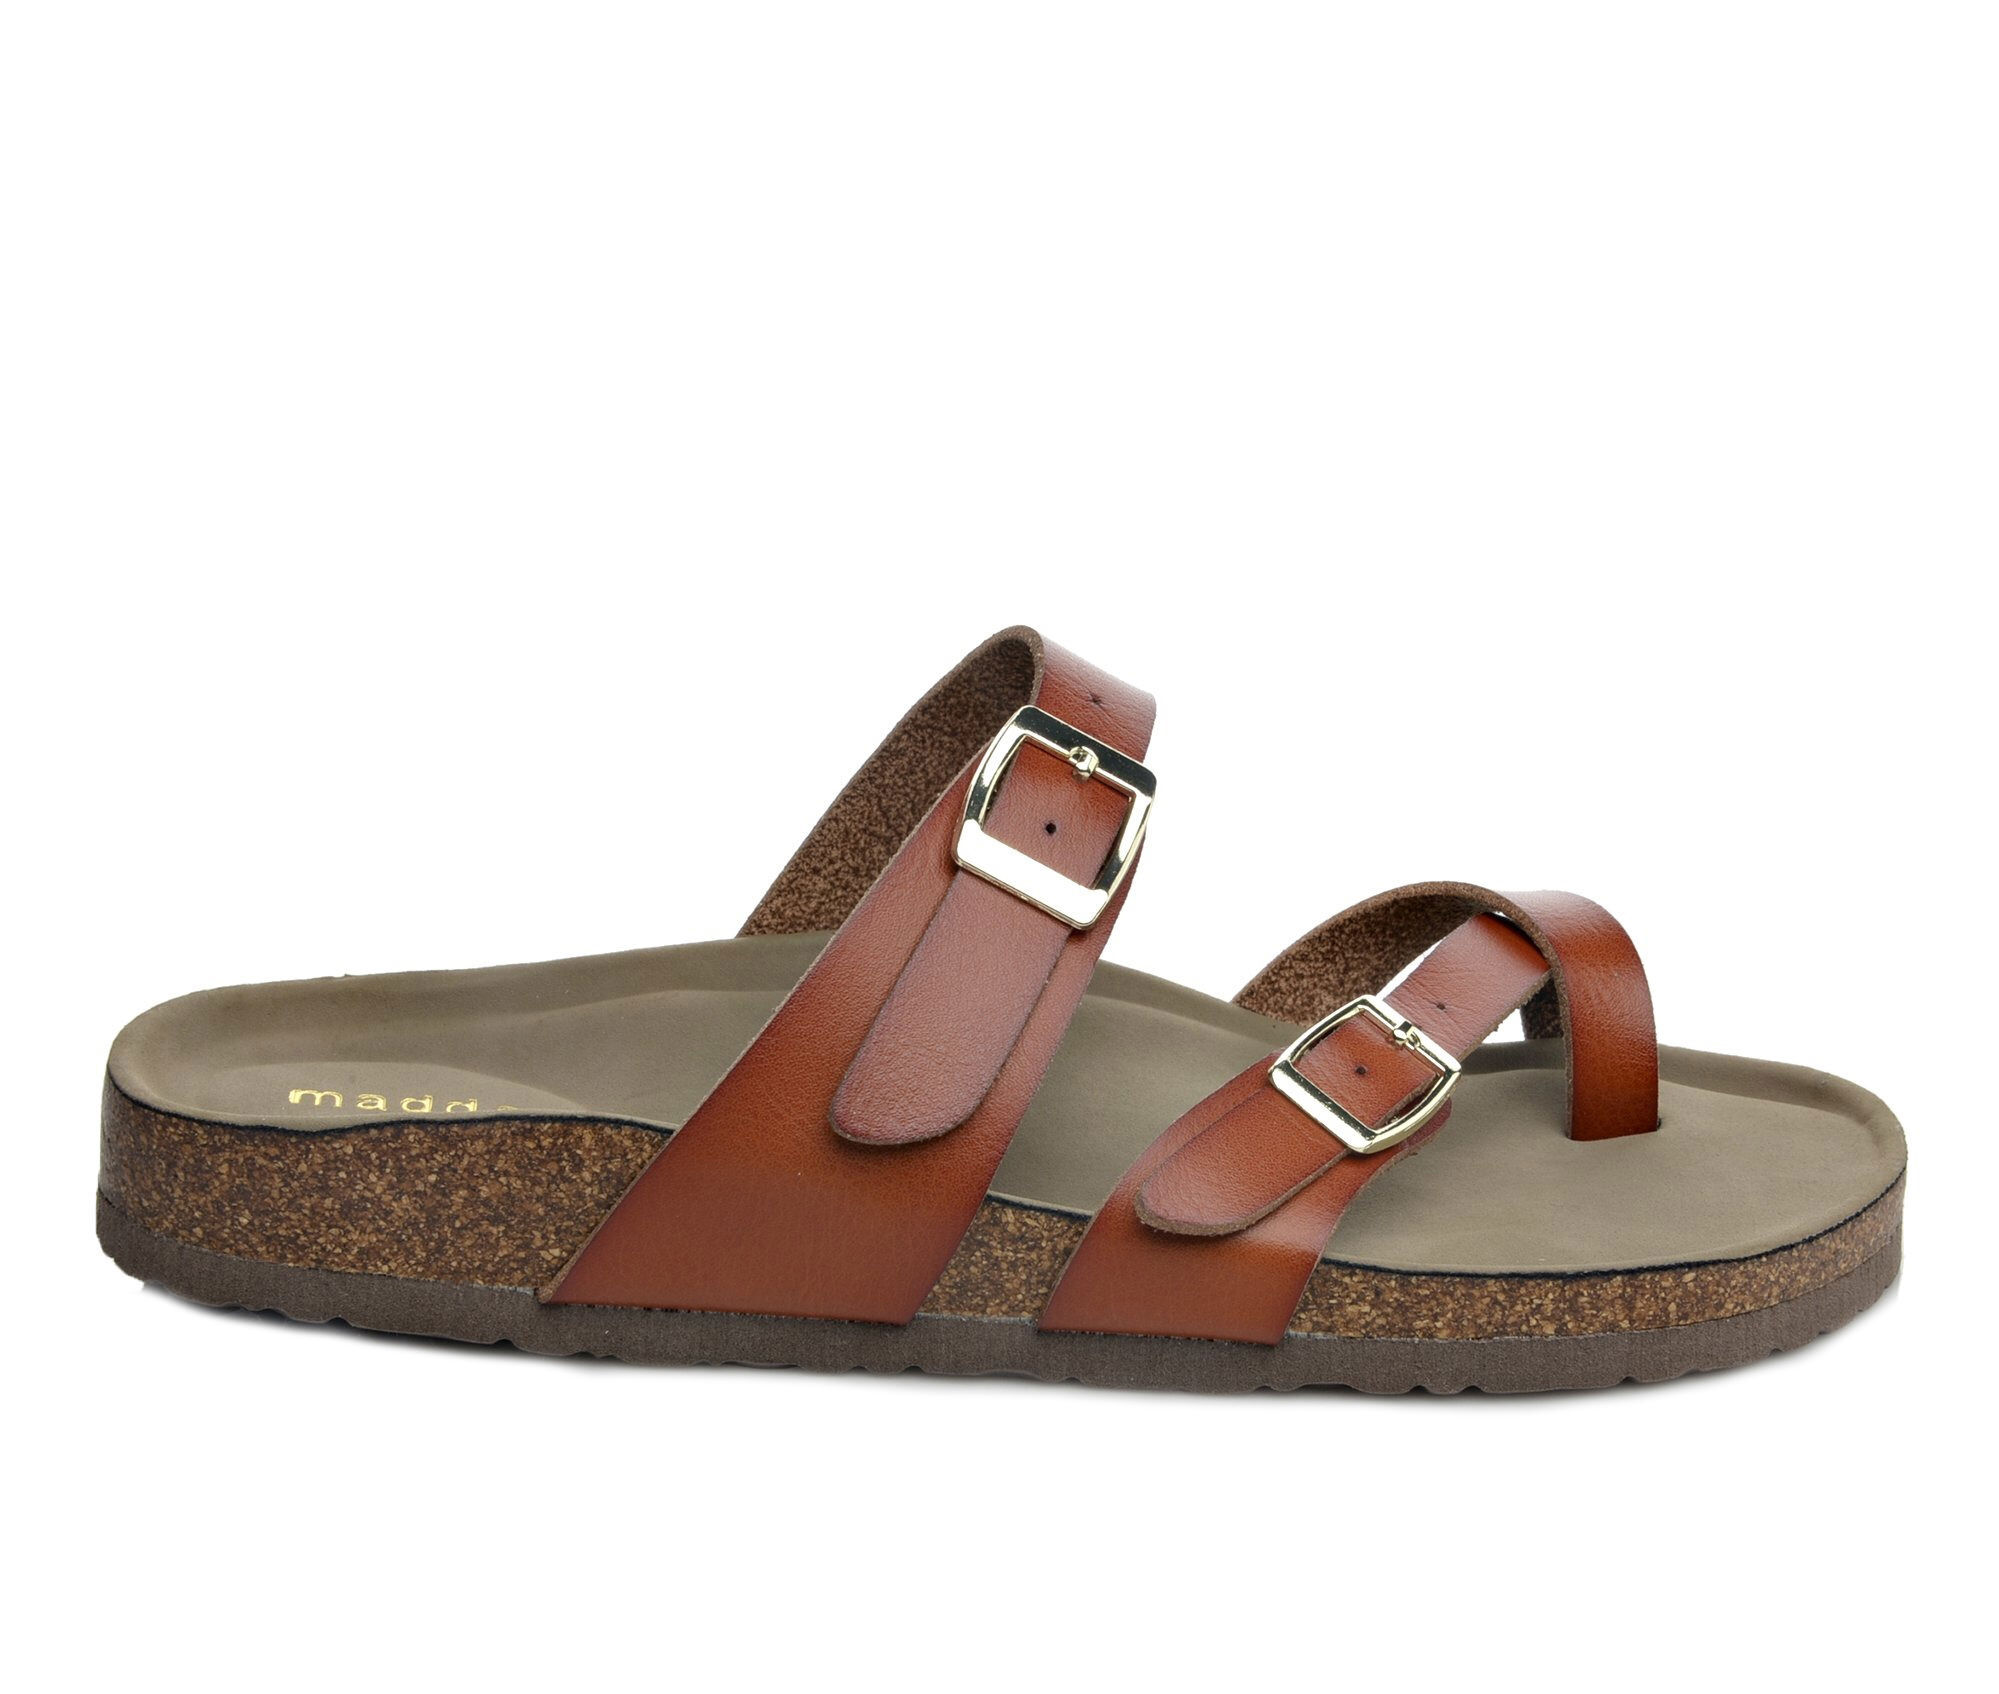 buy special Women's Madden Girl Bryceee Footbed Sandals Cognac